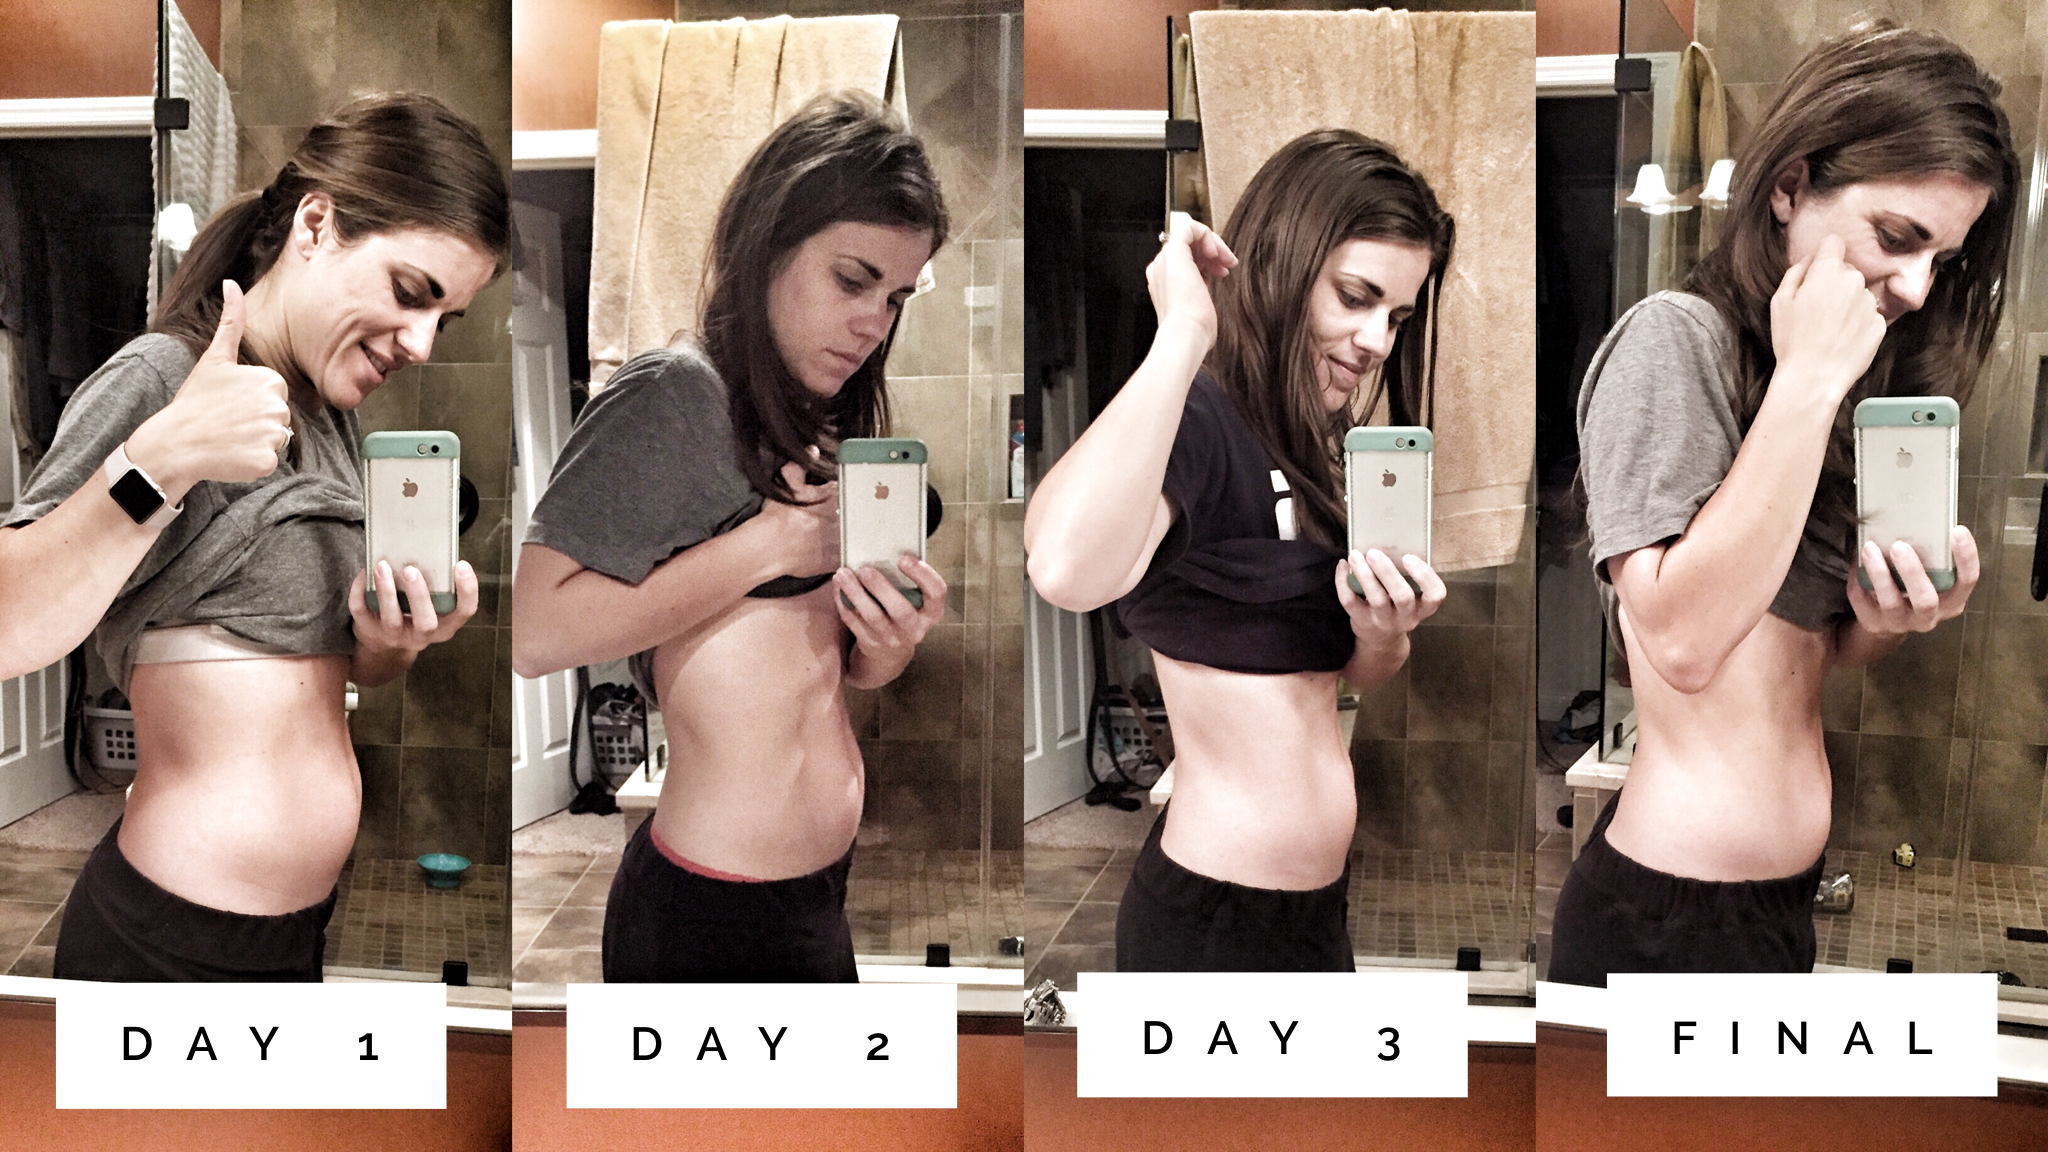 3 Day refresh results 4 pics